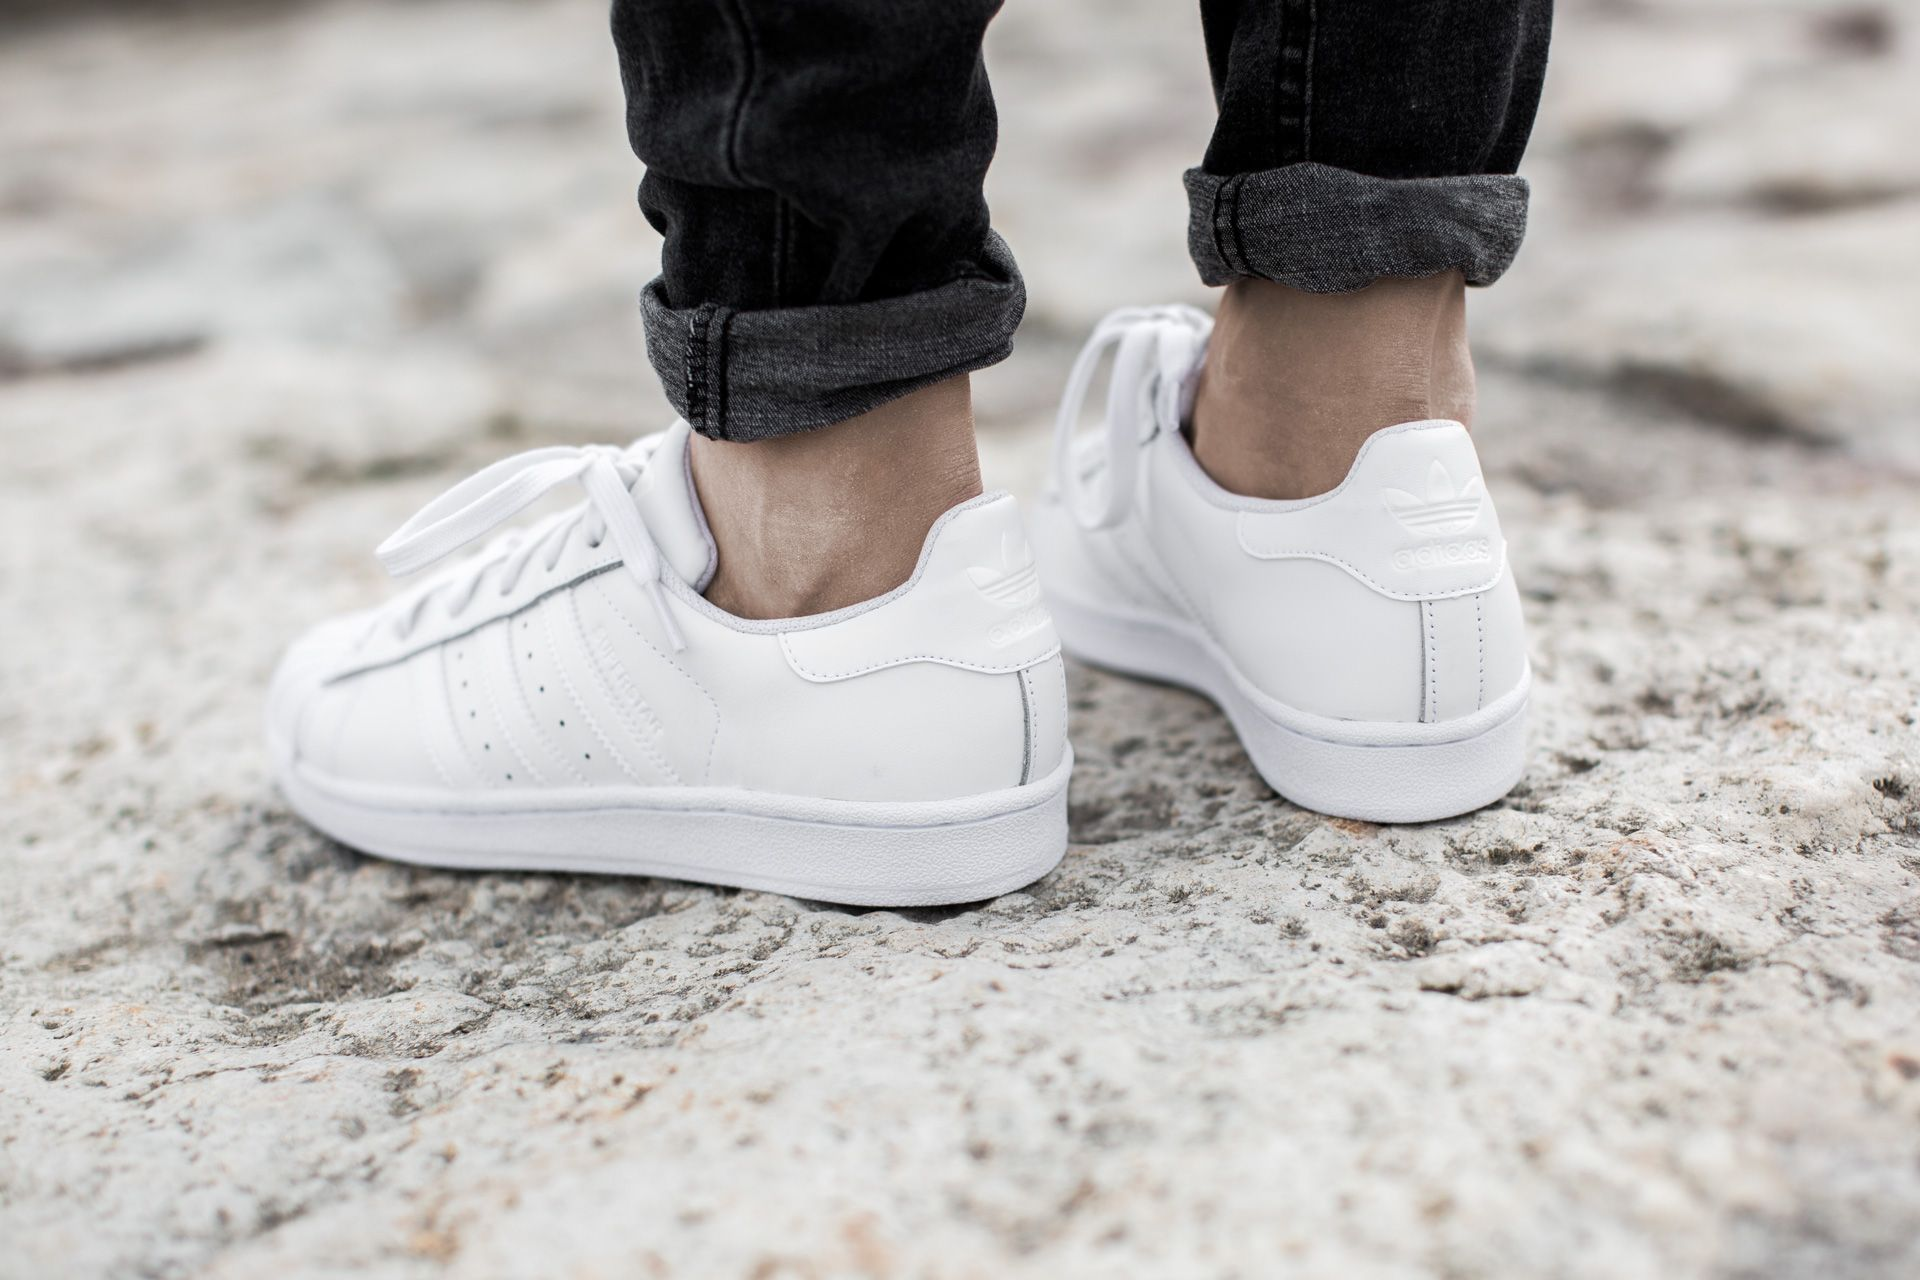 adidas stan smith white shoes b24363 adidas outlet store coupon 2016